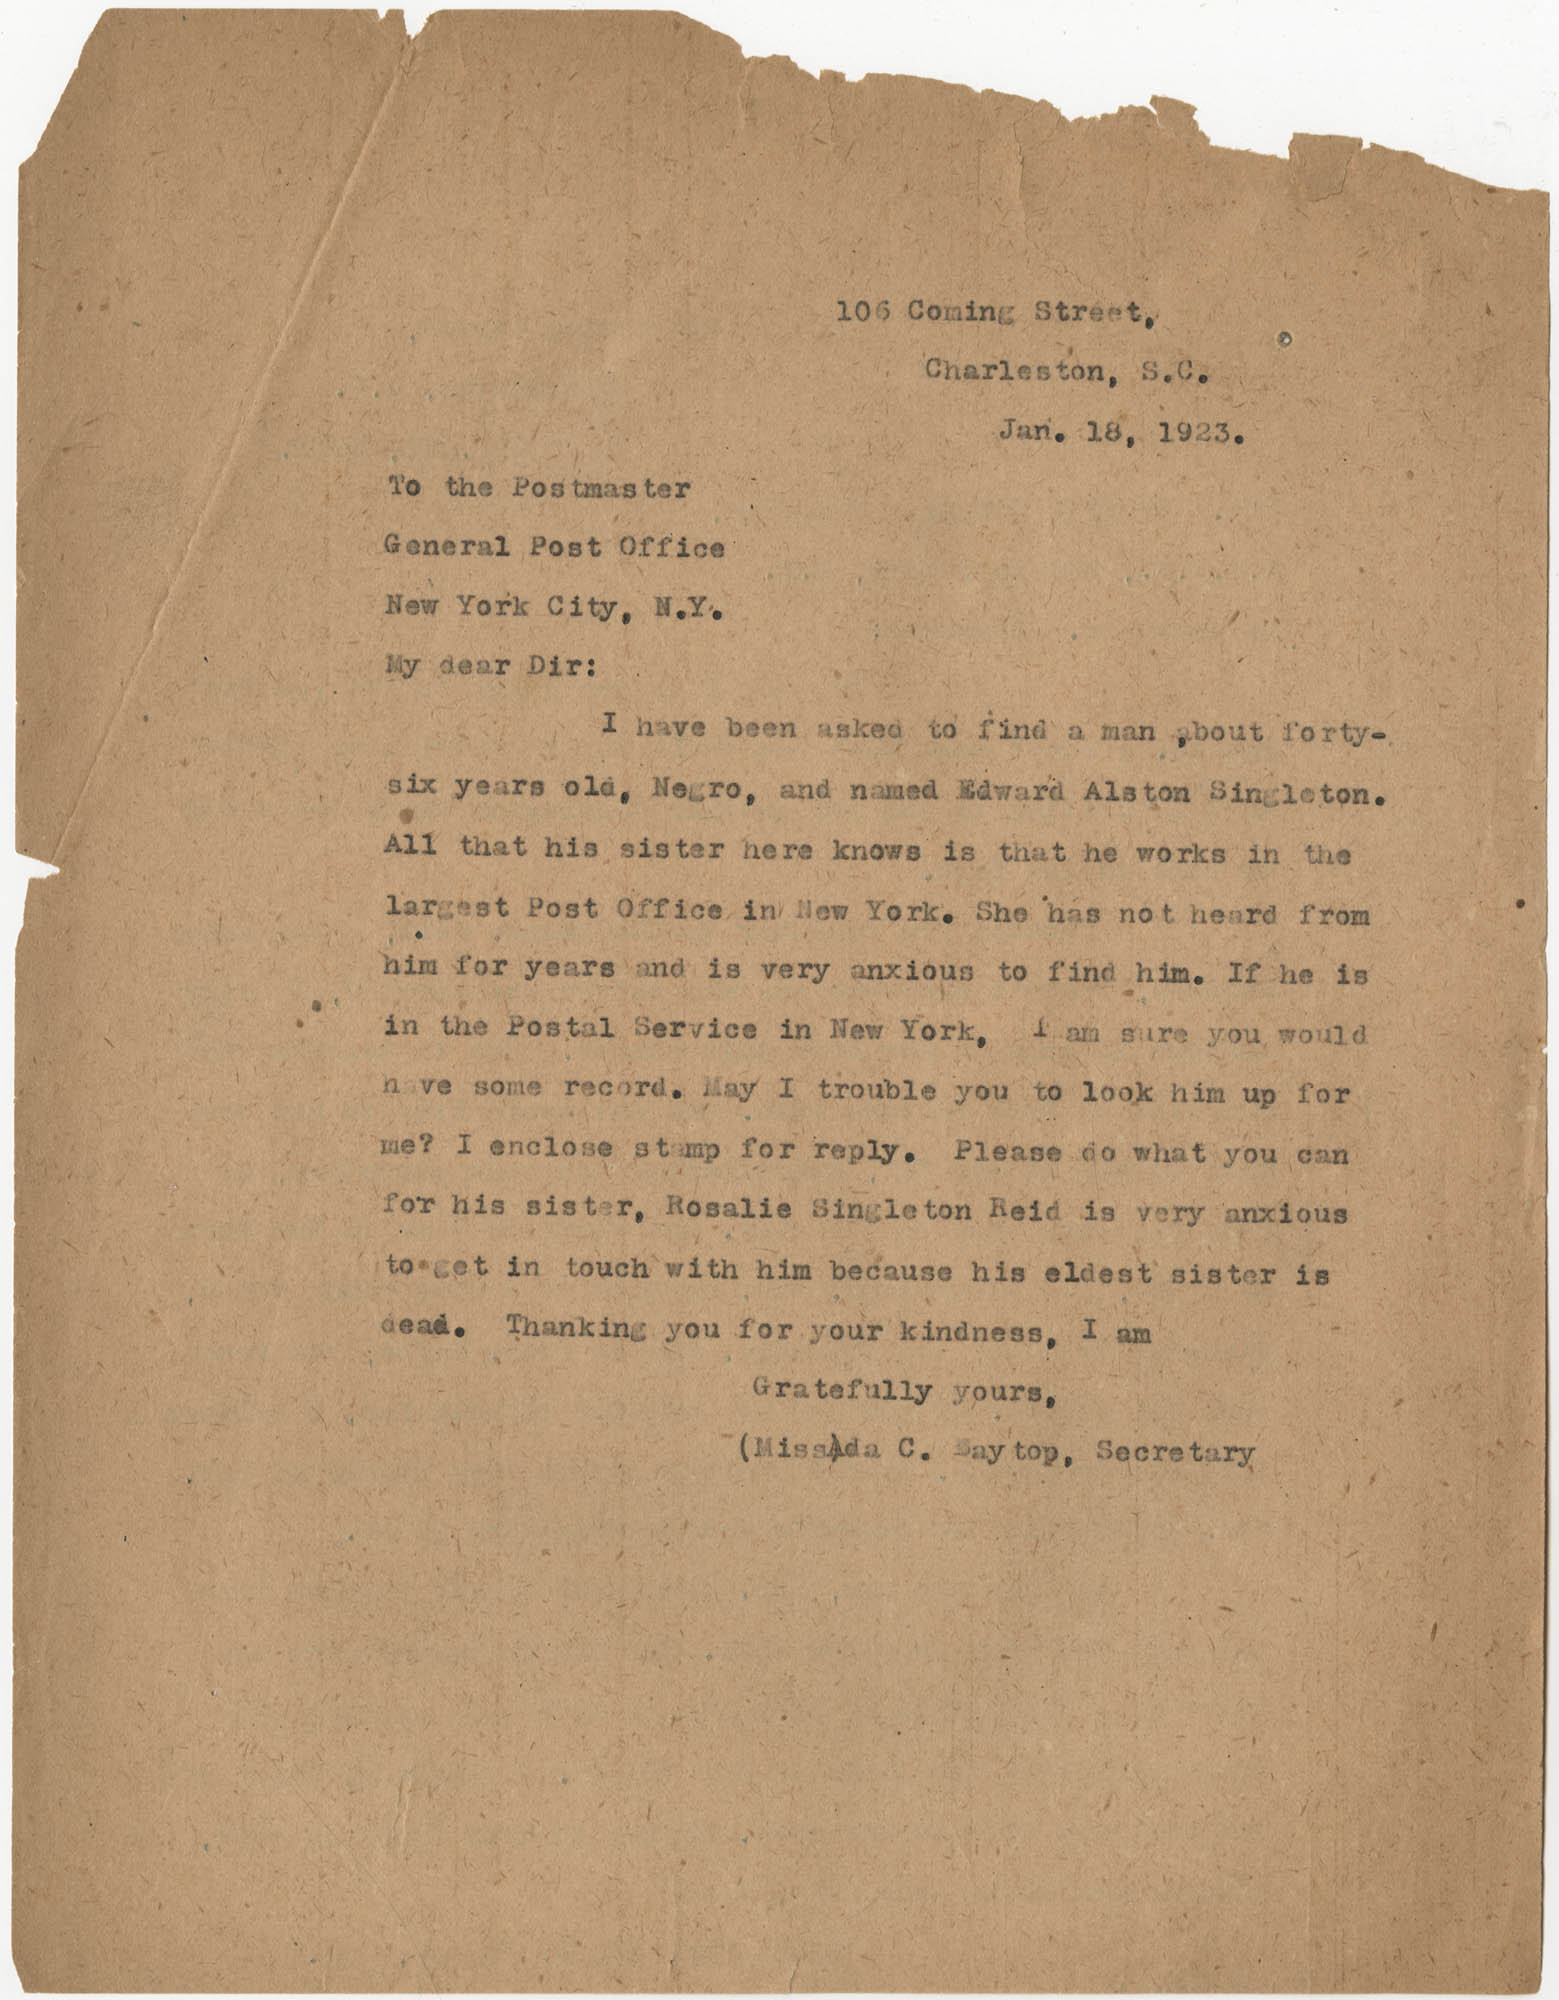 Letter from Ada C. Baytop to the Postmaster, January 18, 1923